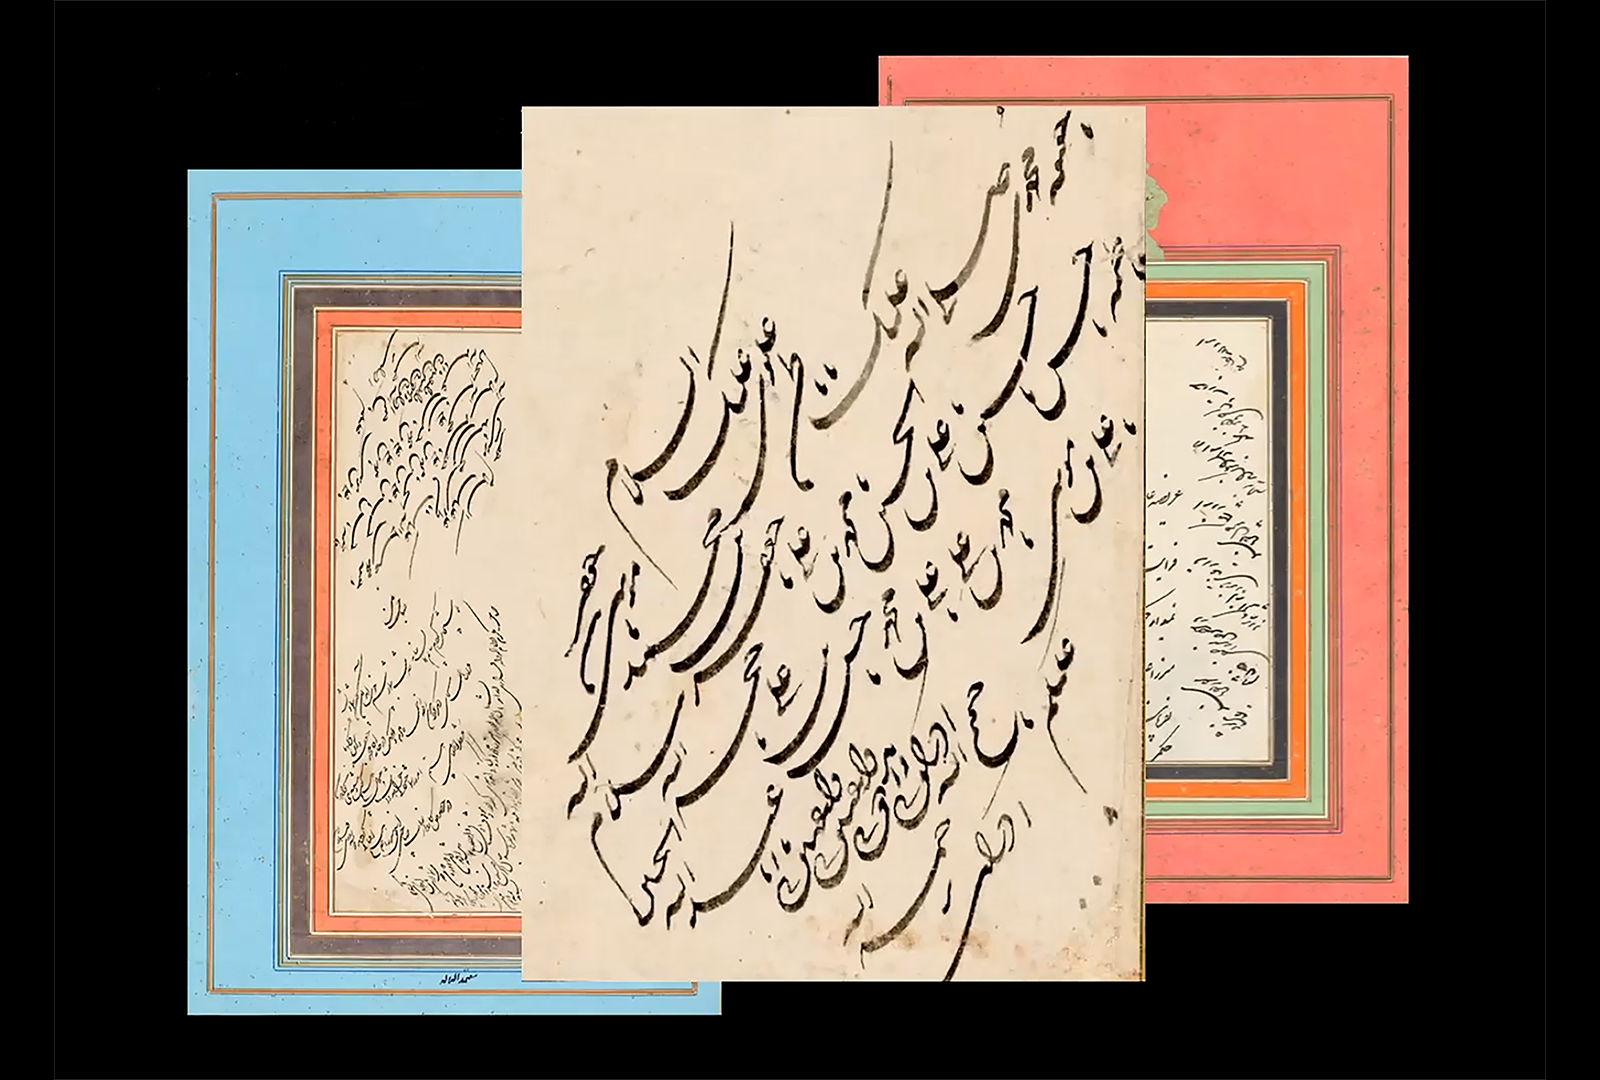 Three images show Persian calligraphy. On the left is calligraphy on paper, framed in light blue, red, and gold. On the right is calligraphy on paper, framed in red, orange, and green. The center image, overlapping slightly with the other two, shows a detail of calligraphy.